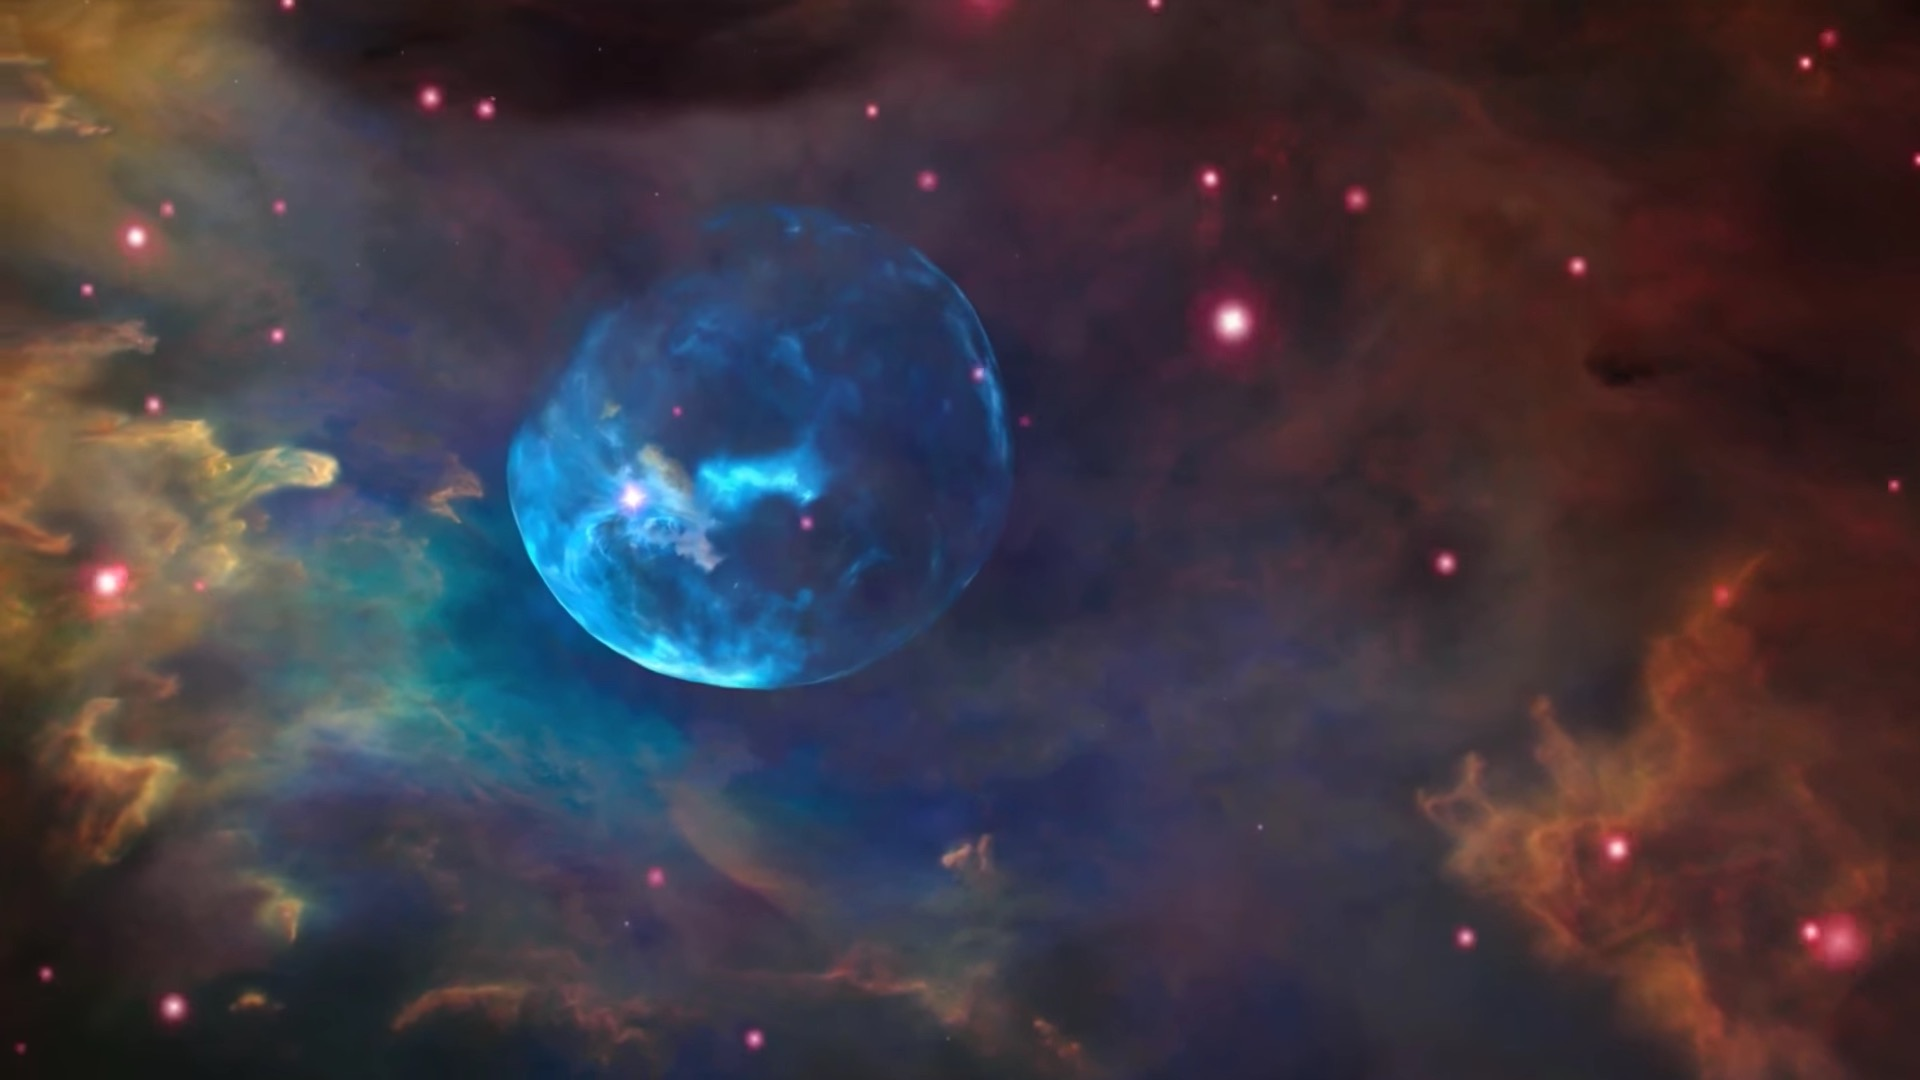 NASA shares incredible image of Bubble Nebula to celebrate.